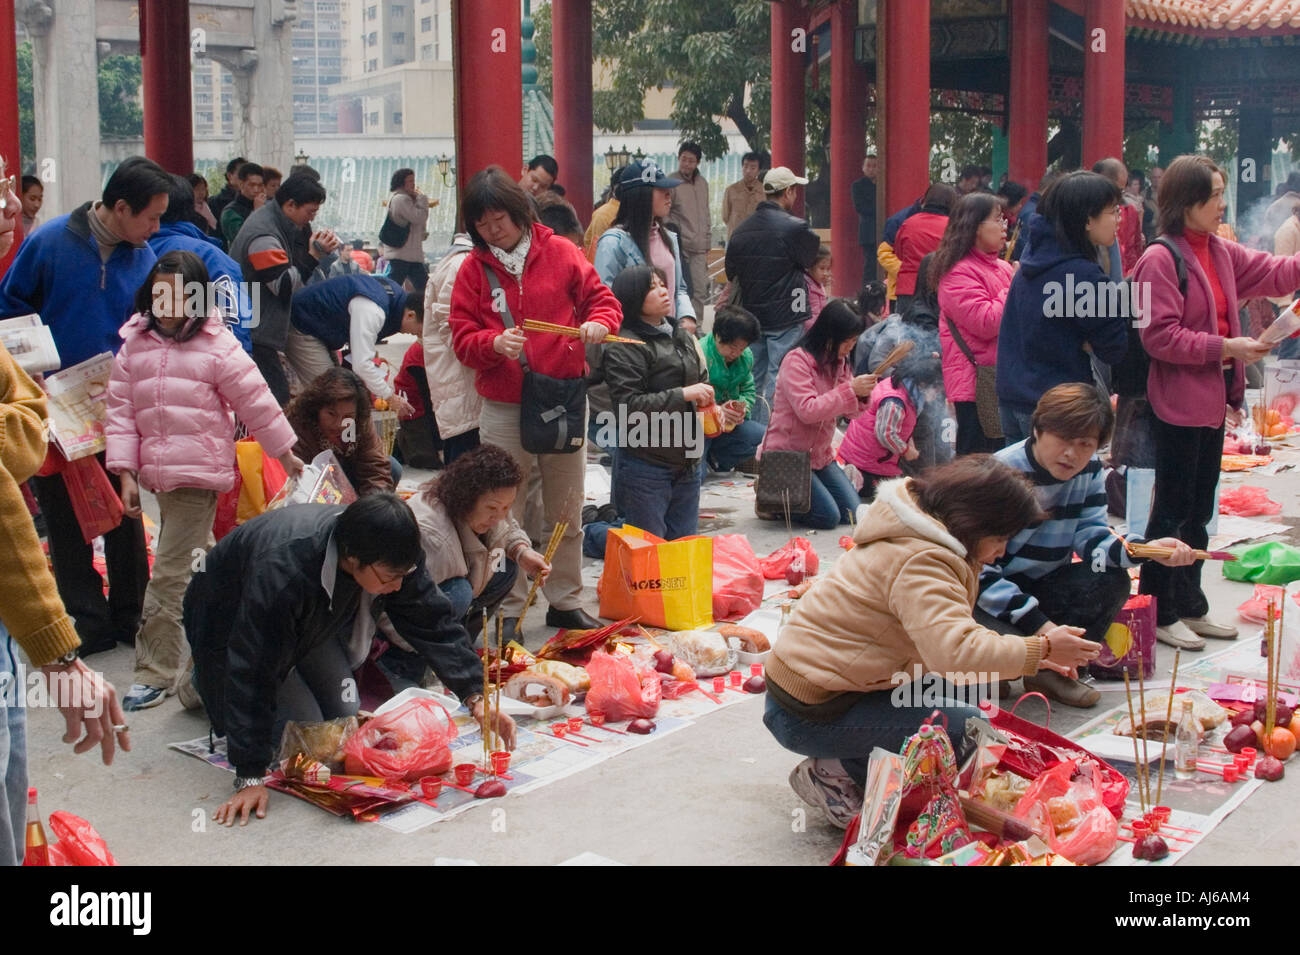 Visiteurs prier à Sik Sik Yuen Wong Tai Sin Temple en Asie Chine Hong Kong Kowloon Photo Stock